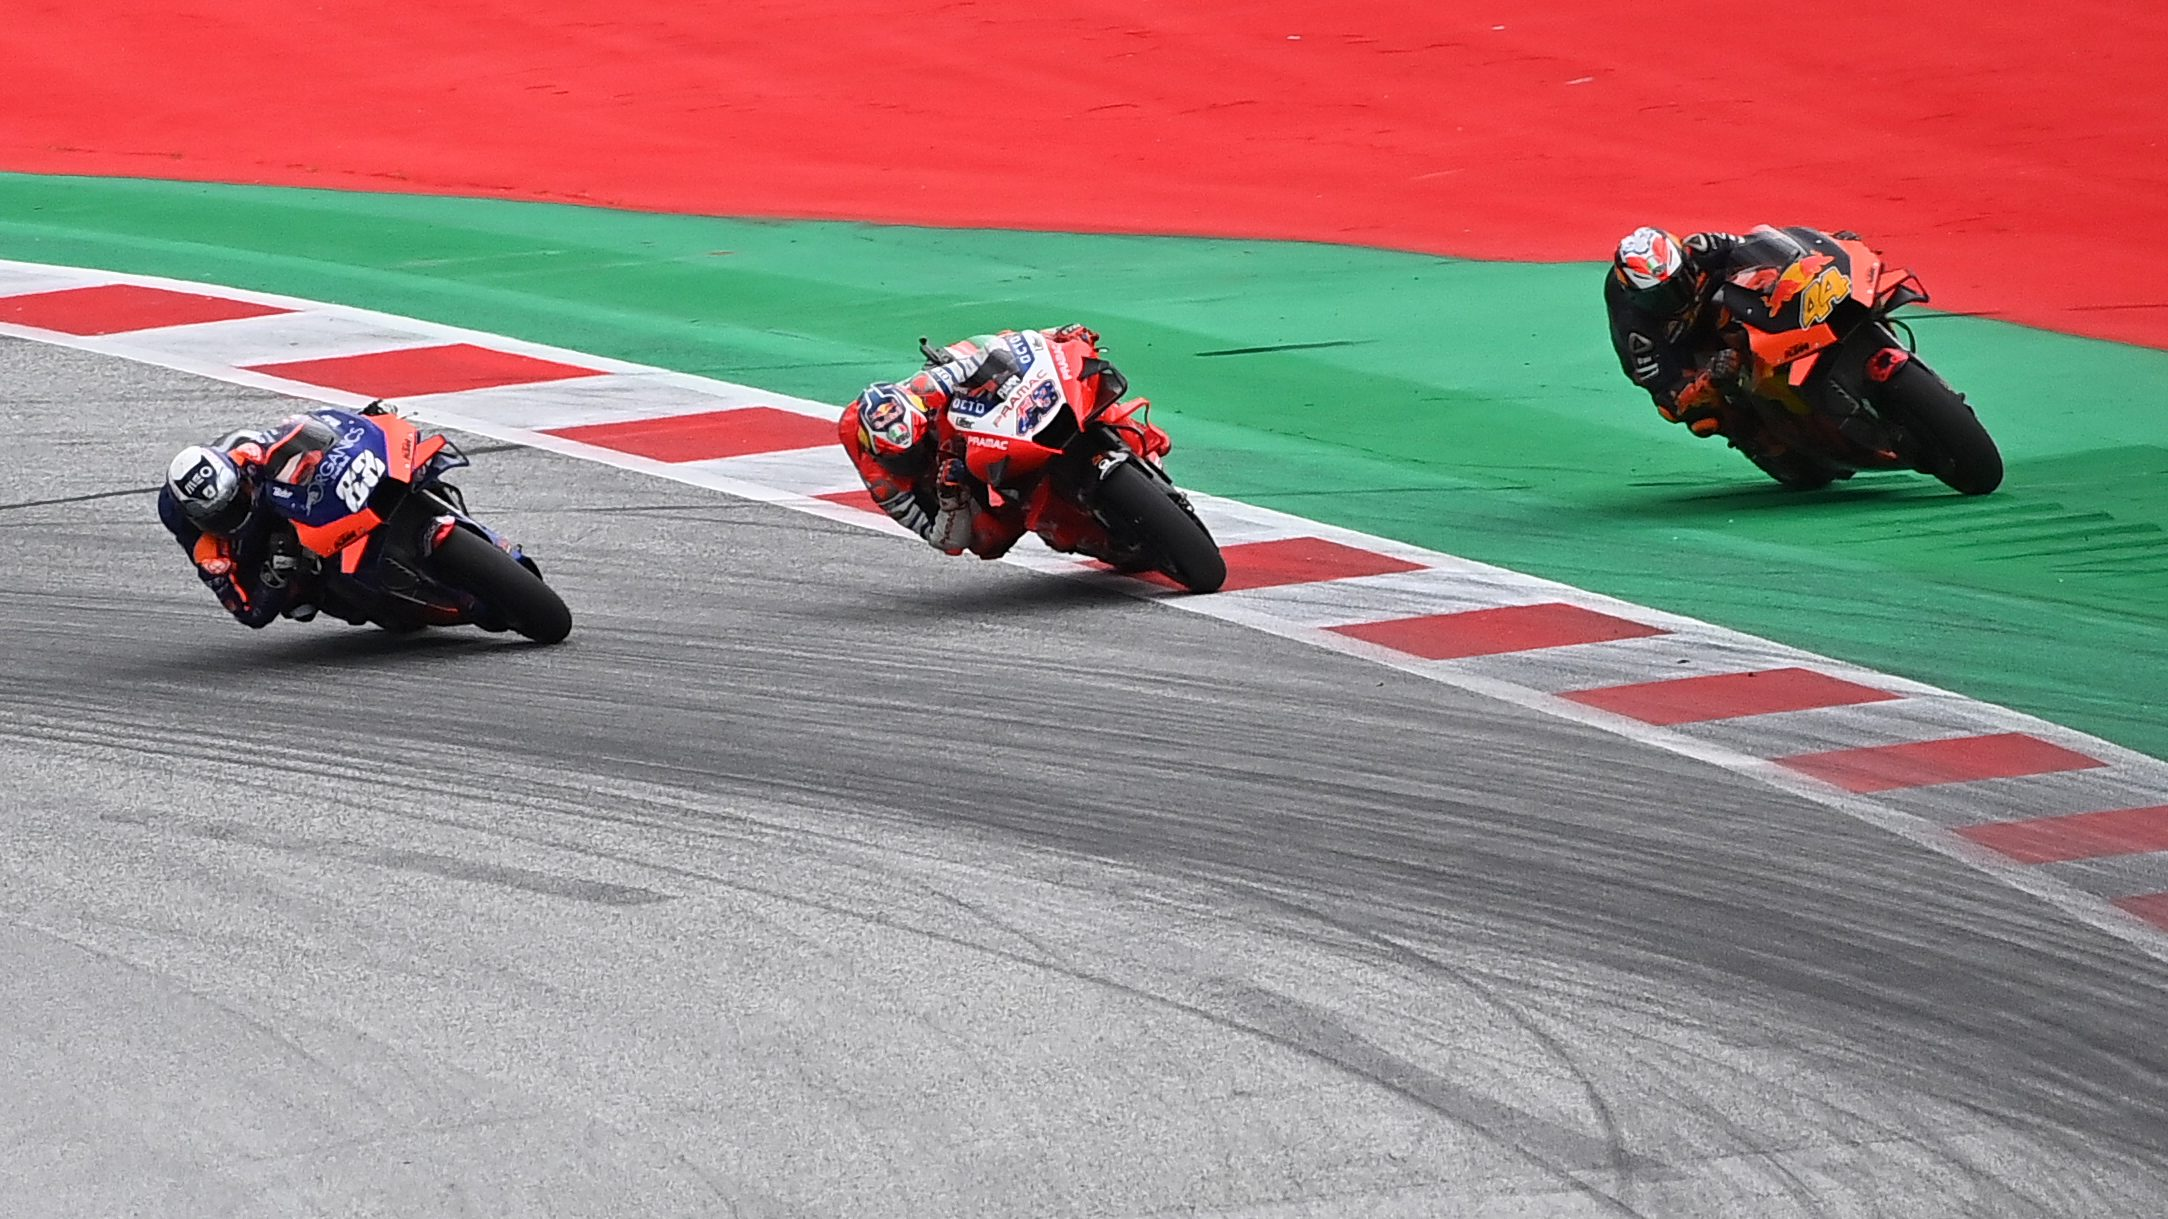 Motogp Oliveira First Victory On Three Wide Pass In Last Corner Nbc Sports